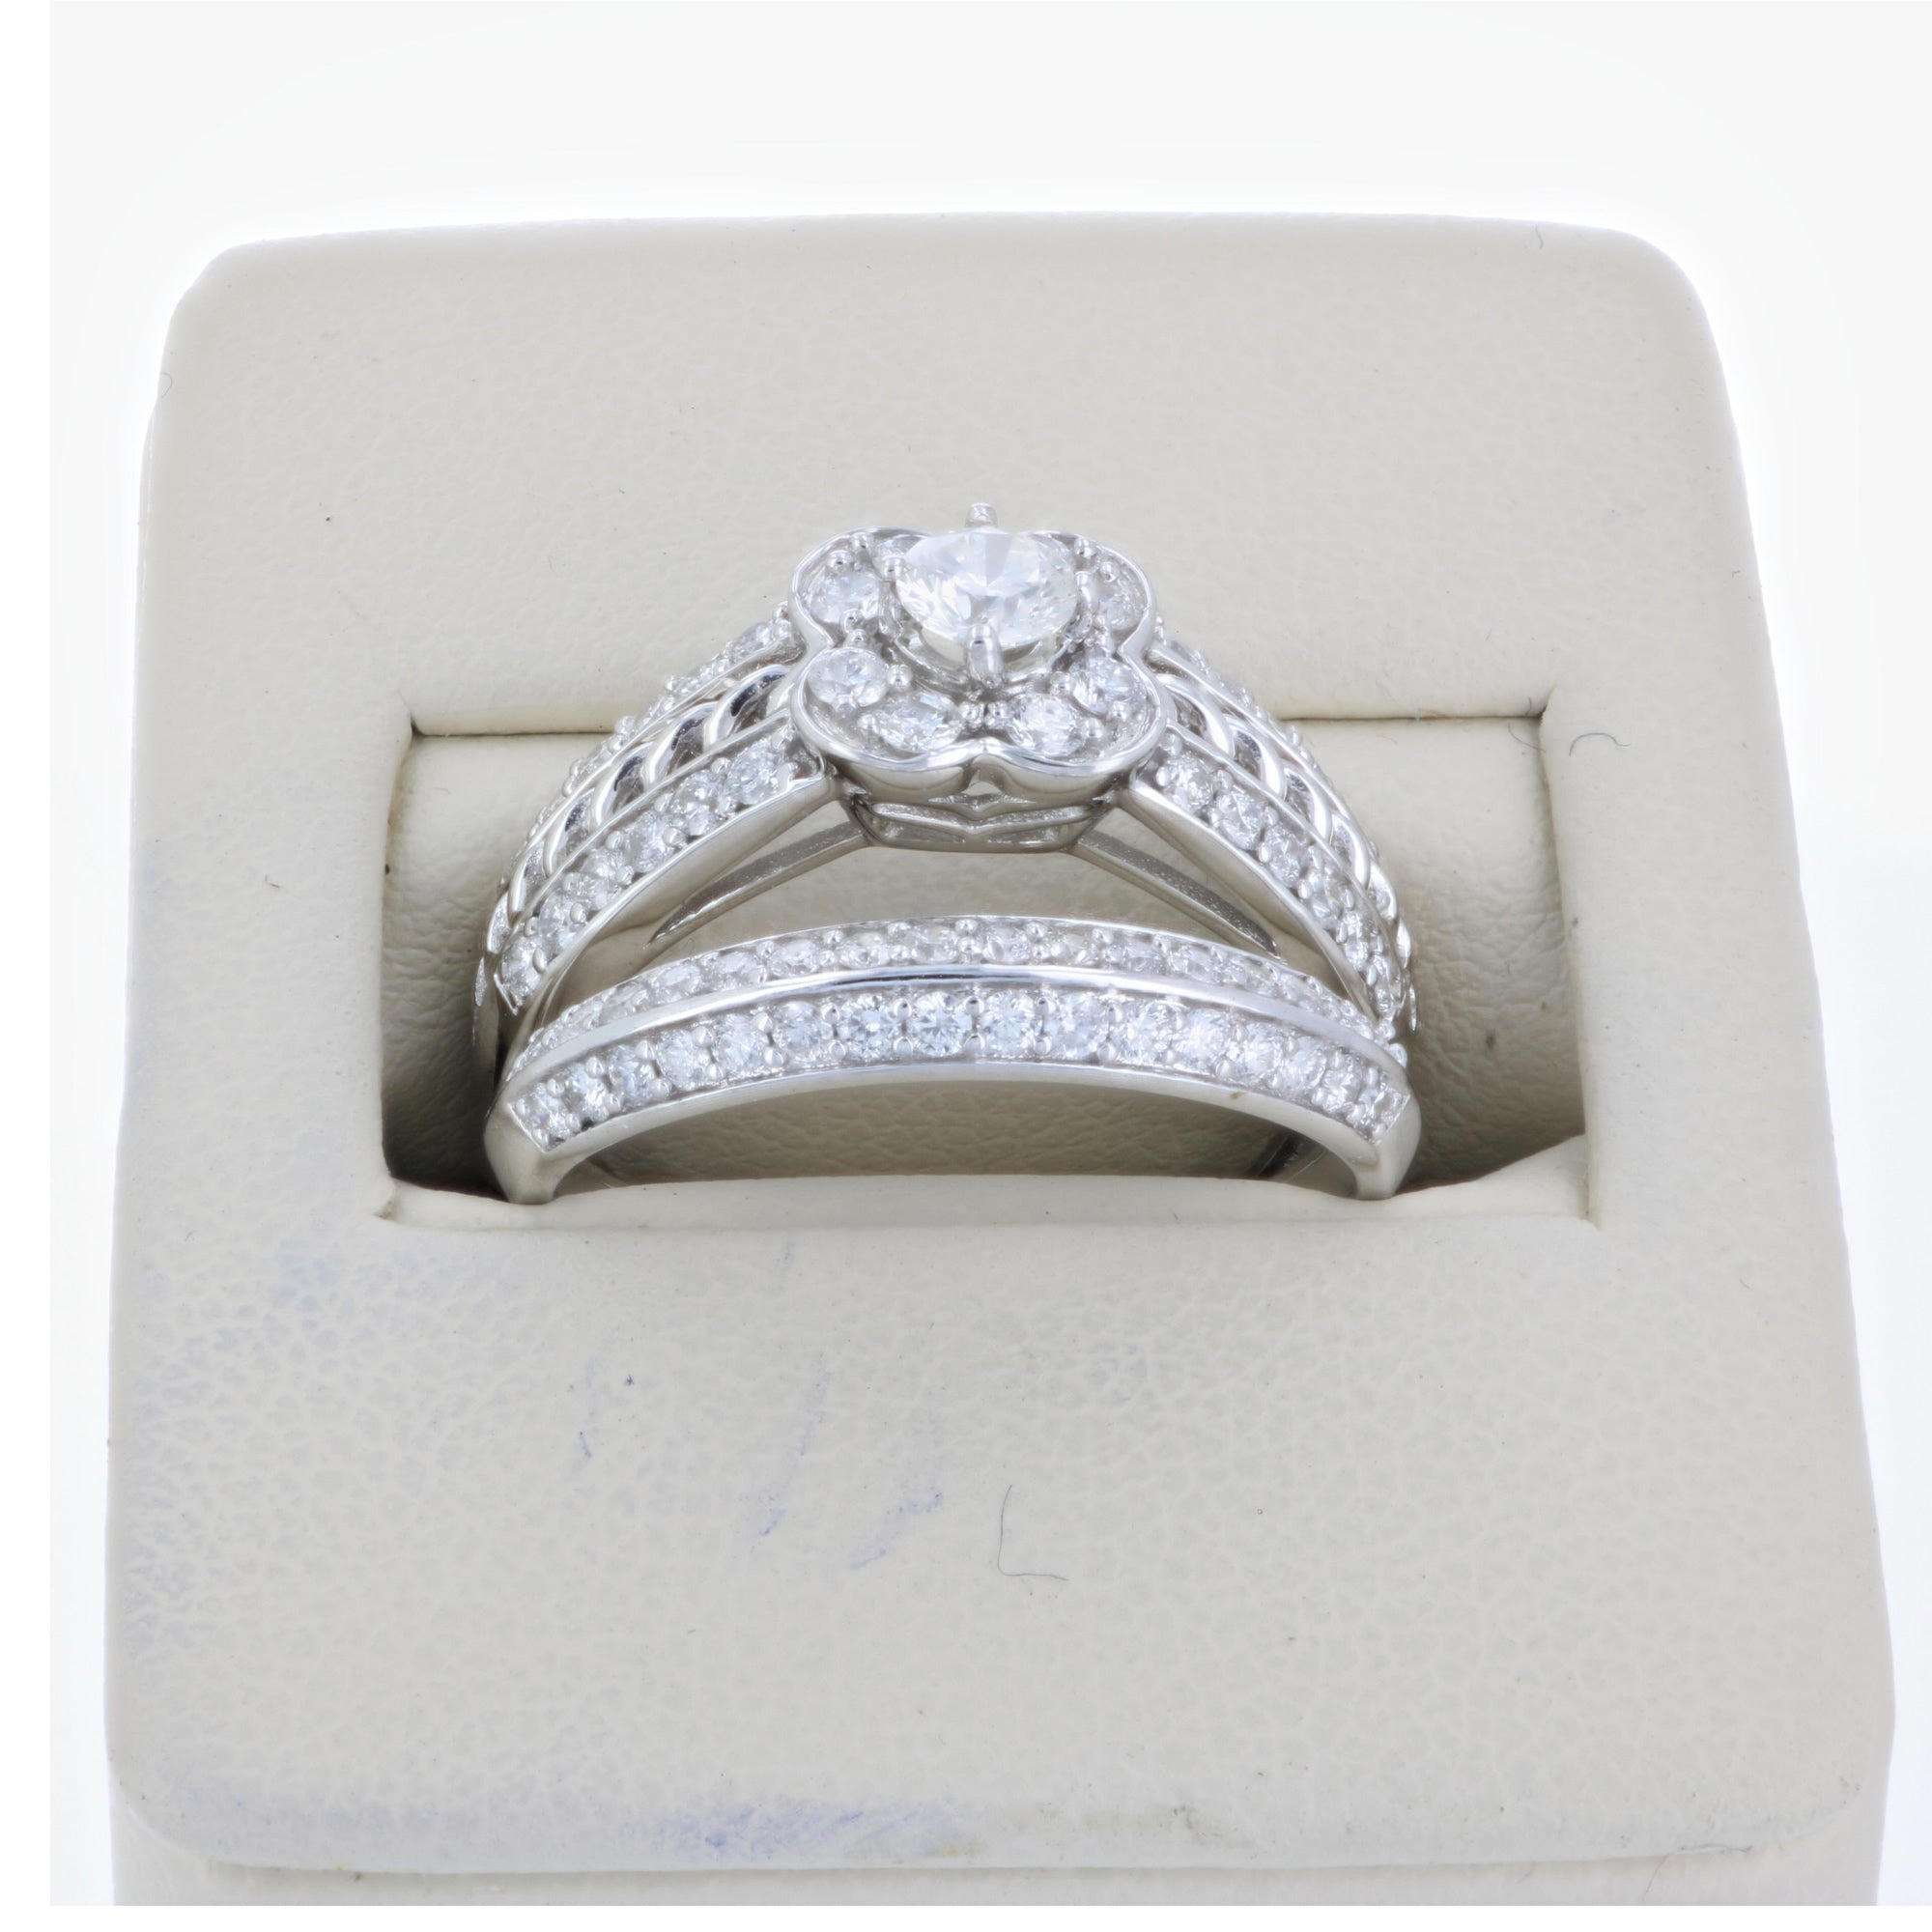 1 CT Diamond Flower Wedding Engagement Ring Set 14K White Gold Vir